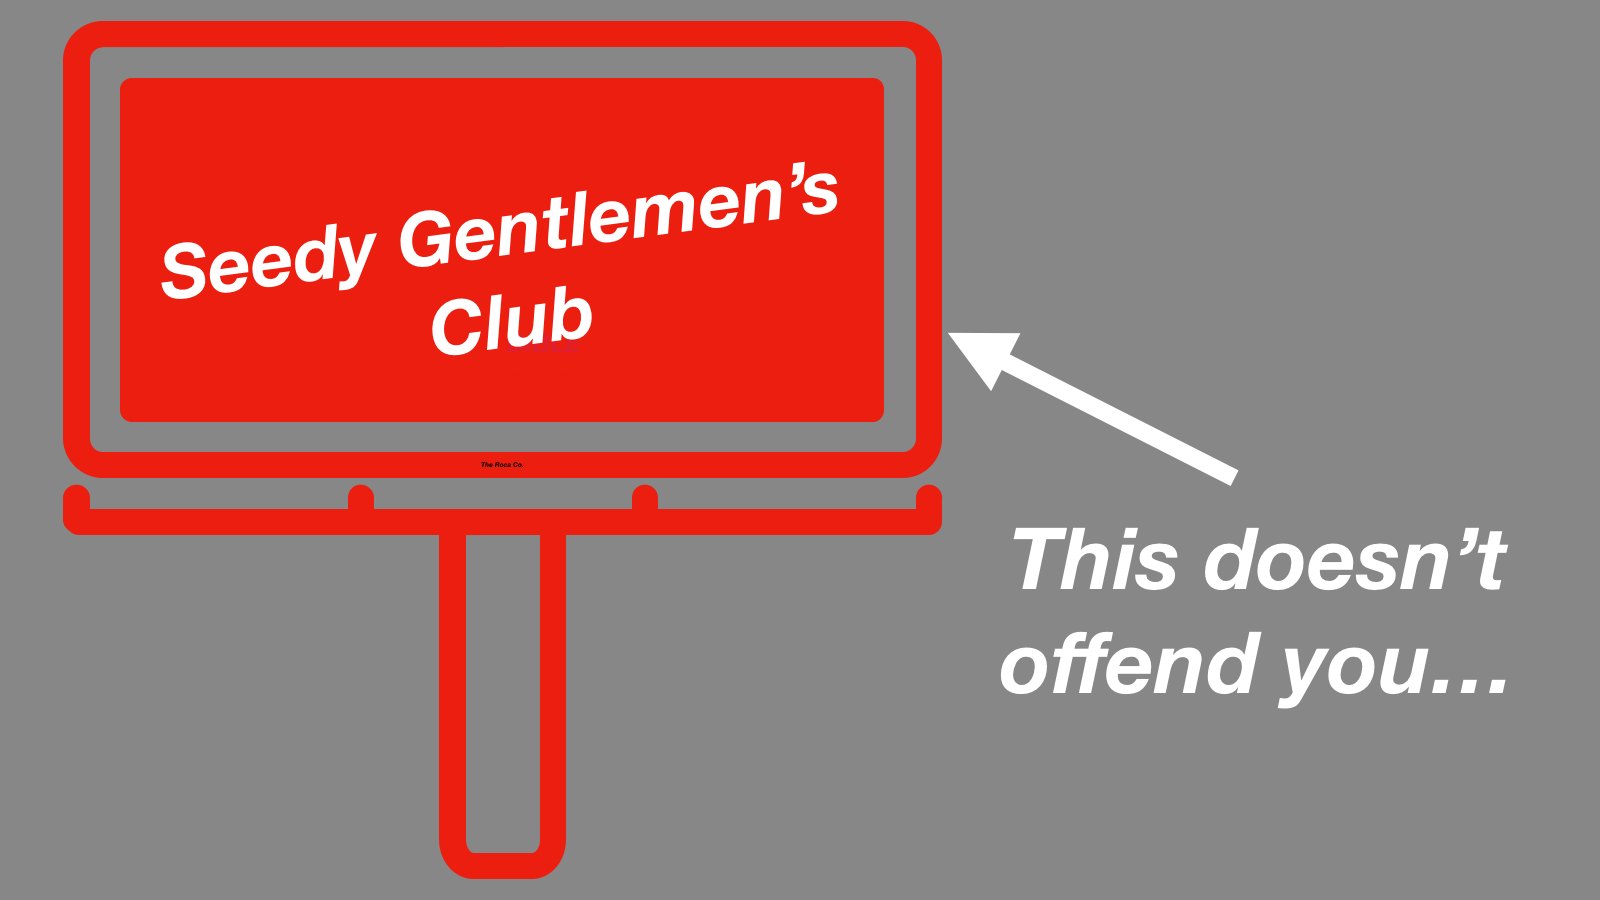 Gent Club inoffensive.png